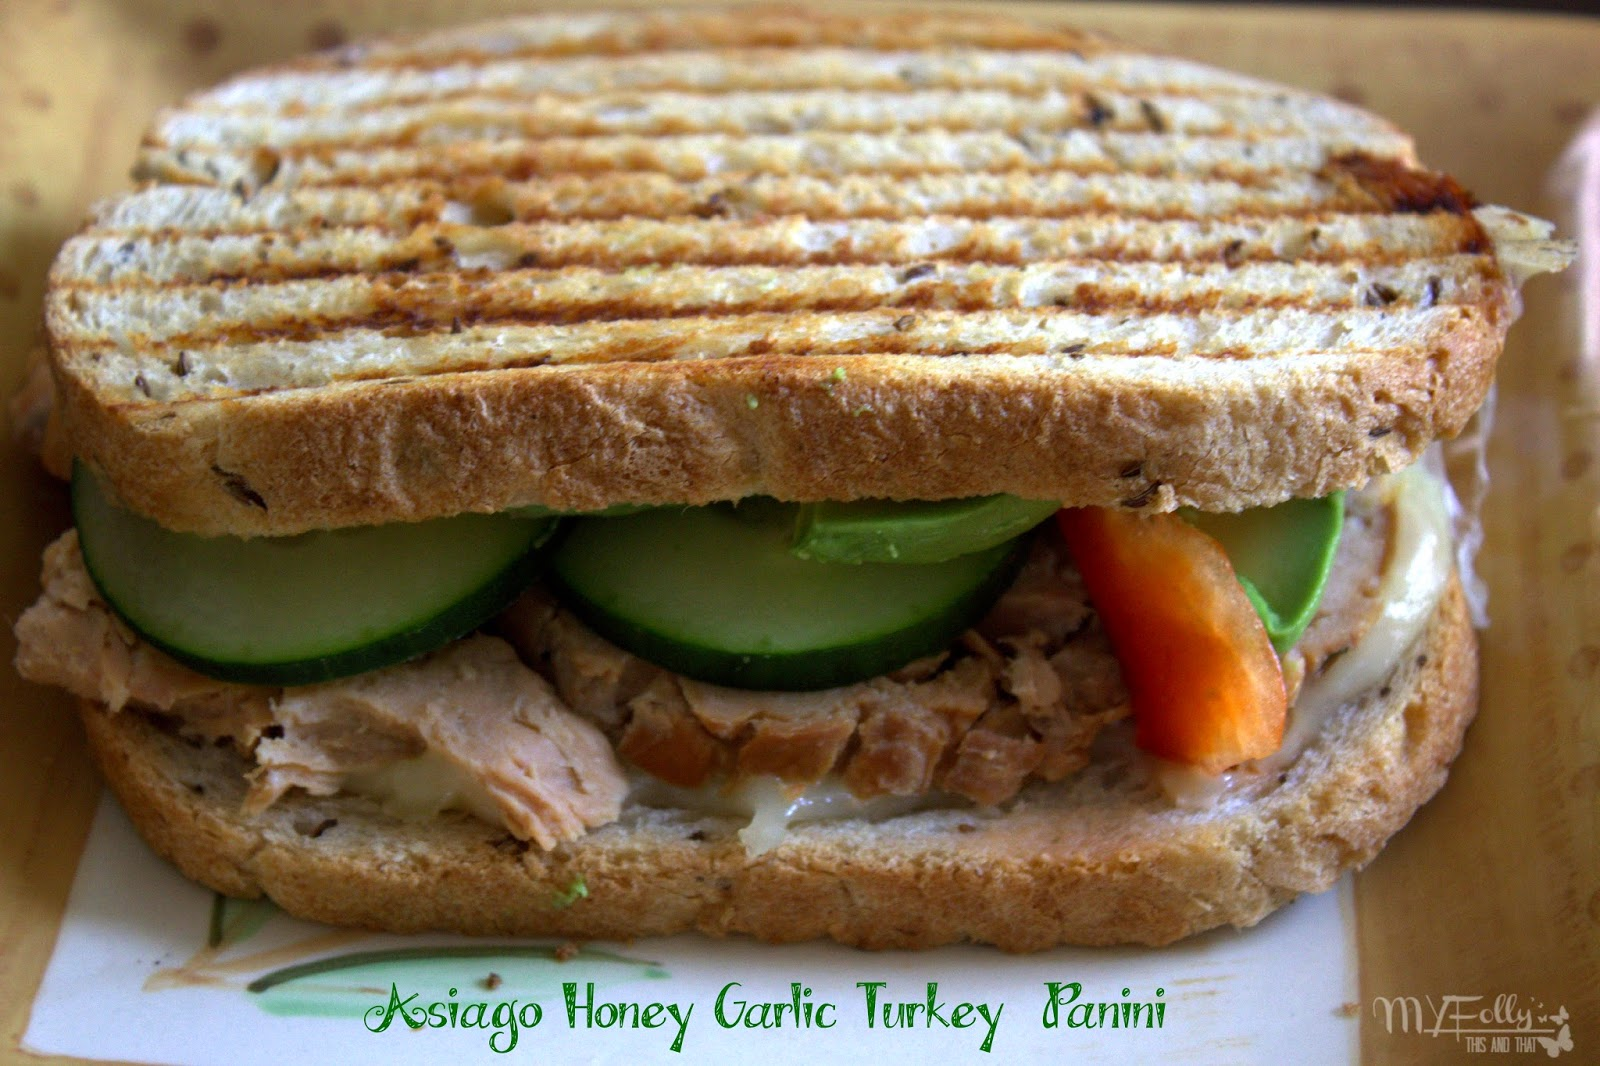 Asiago Honey Garlic Turkey Panini/ This & That #panini #slowcooker #turkey #lunch #gourmetwarehouse #honeygarlicinjectable